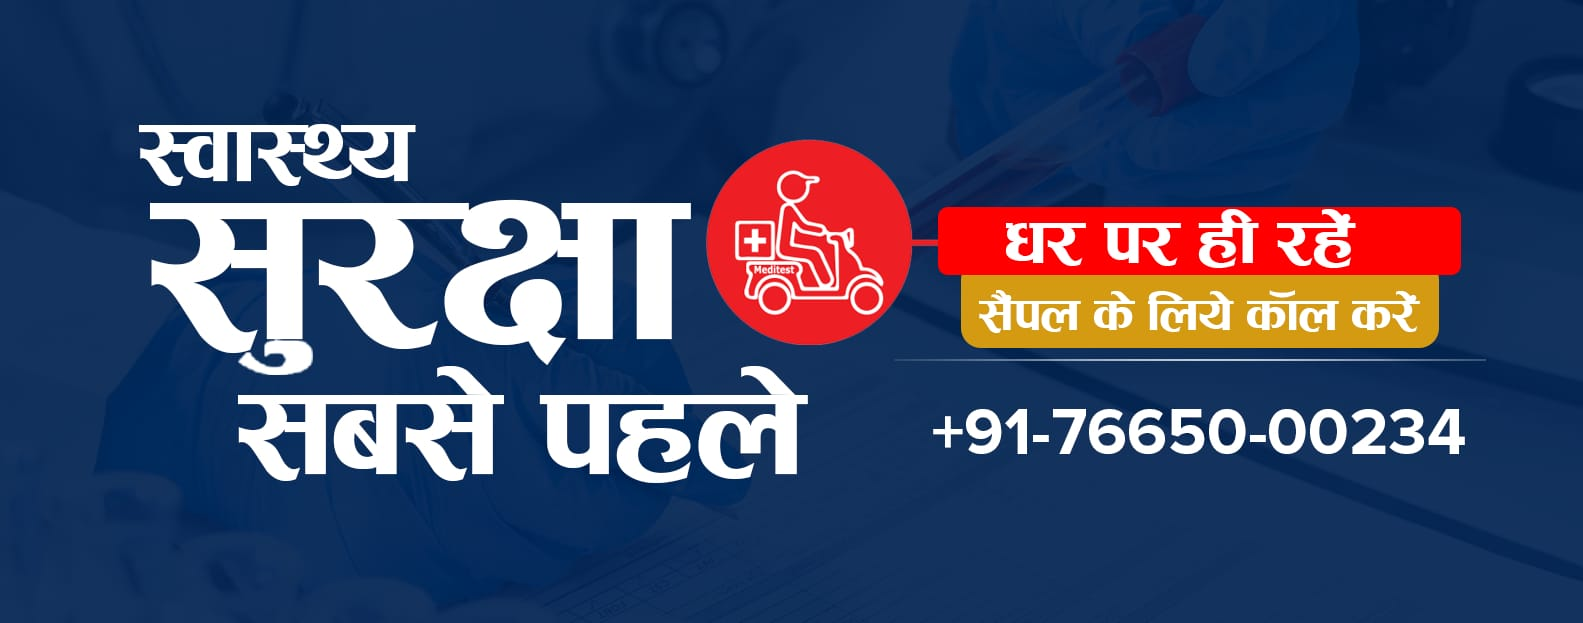 Best Diagnostic centre in Udaipur